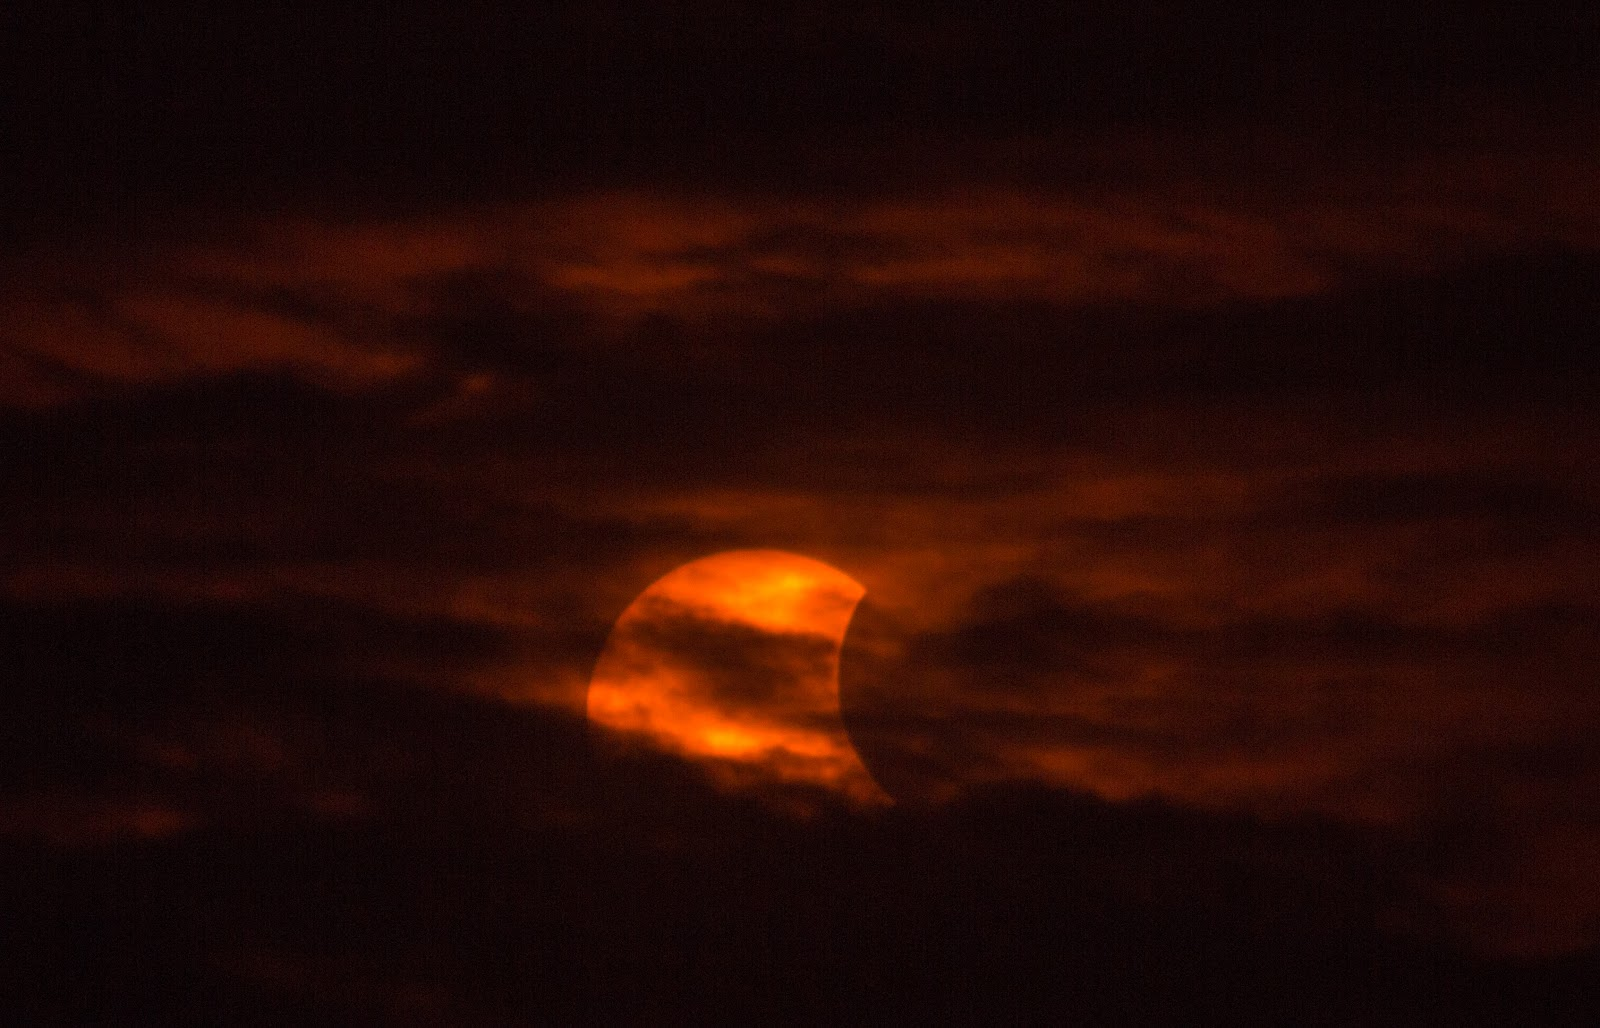 October 23 Partial Solar Eclipse